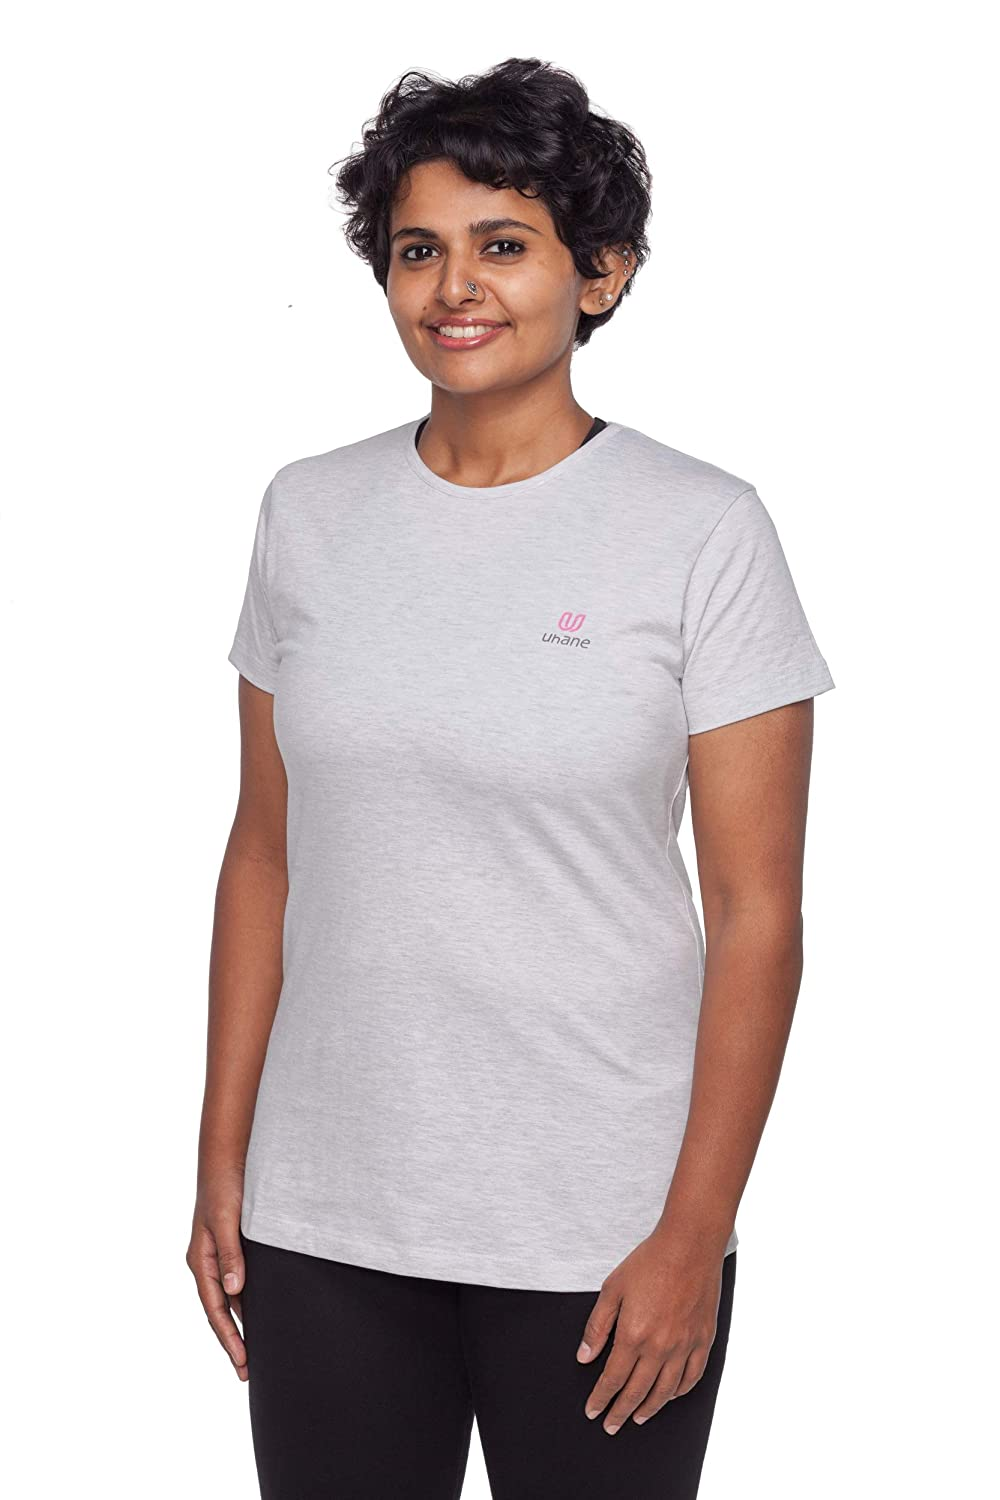 Uhane Women's Yoga and Gym Cotton Work-Out Round Neck Straight Cut Plain T-Shirt (Beige) Short Sleeves Top for Sports and Fitness